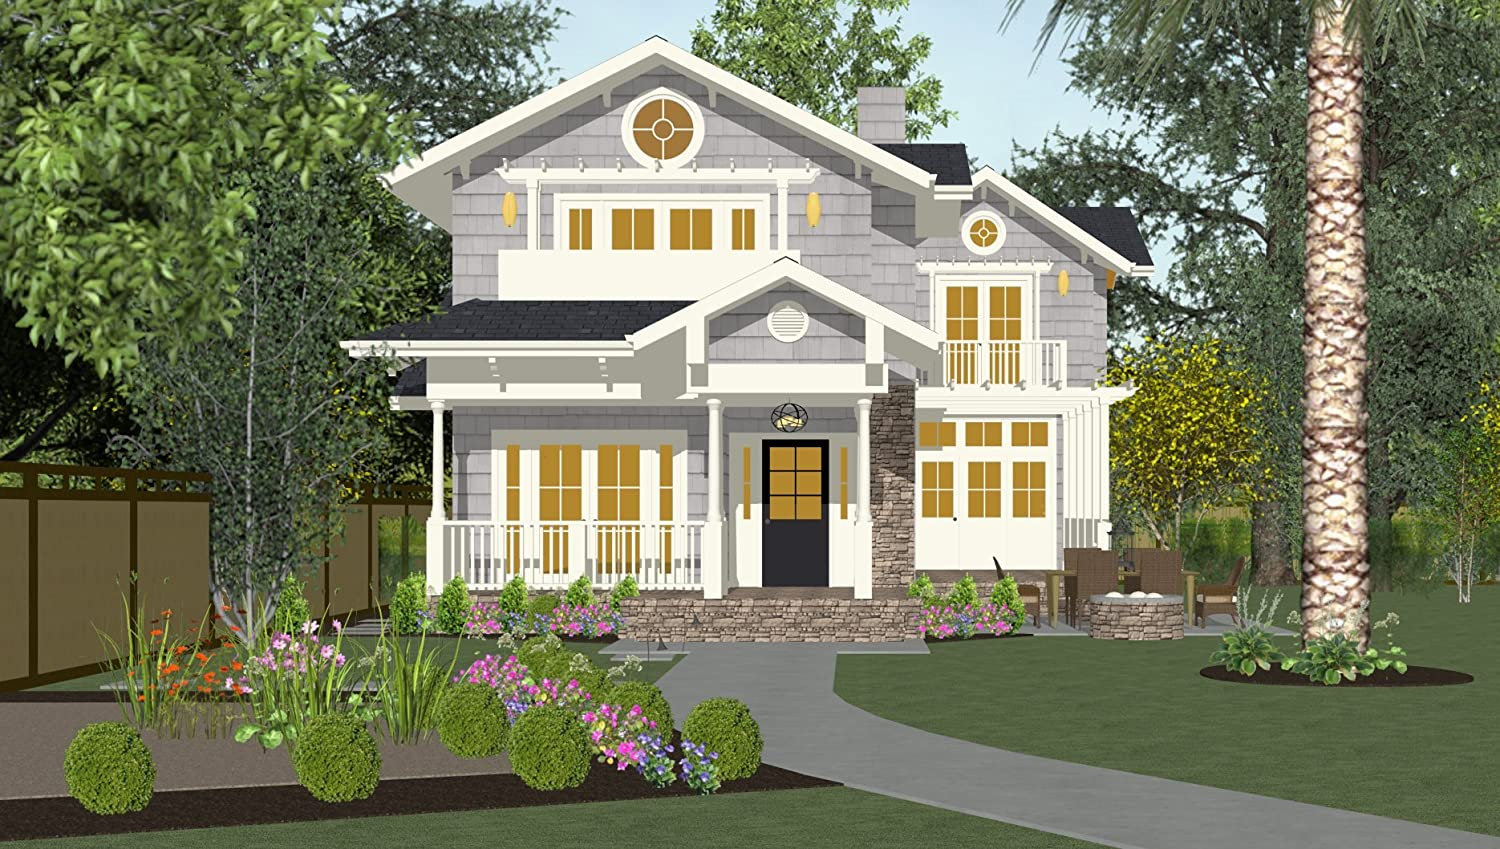 Amazoncom Chief Architect Home Designer Essentials  Software - Professional home design suite platinum